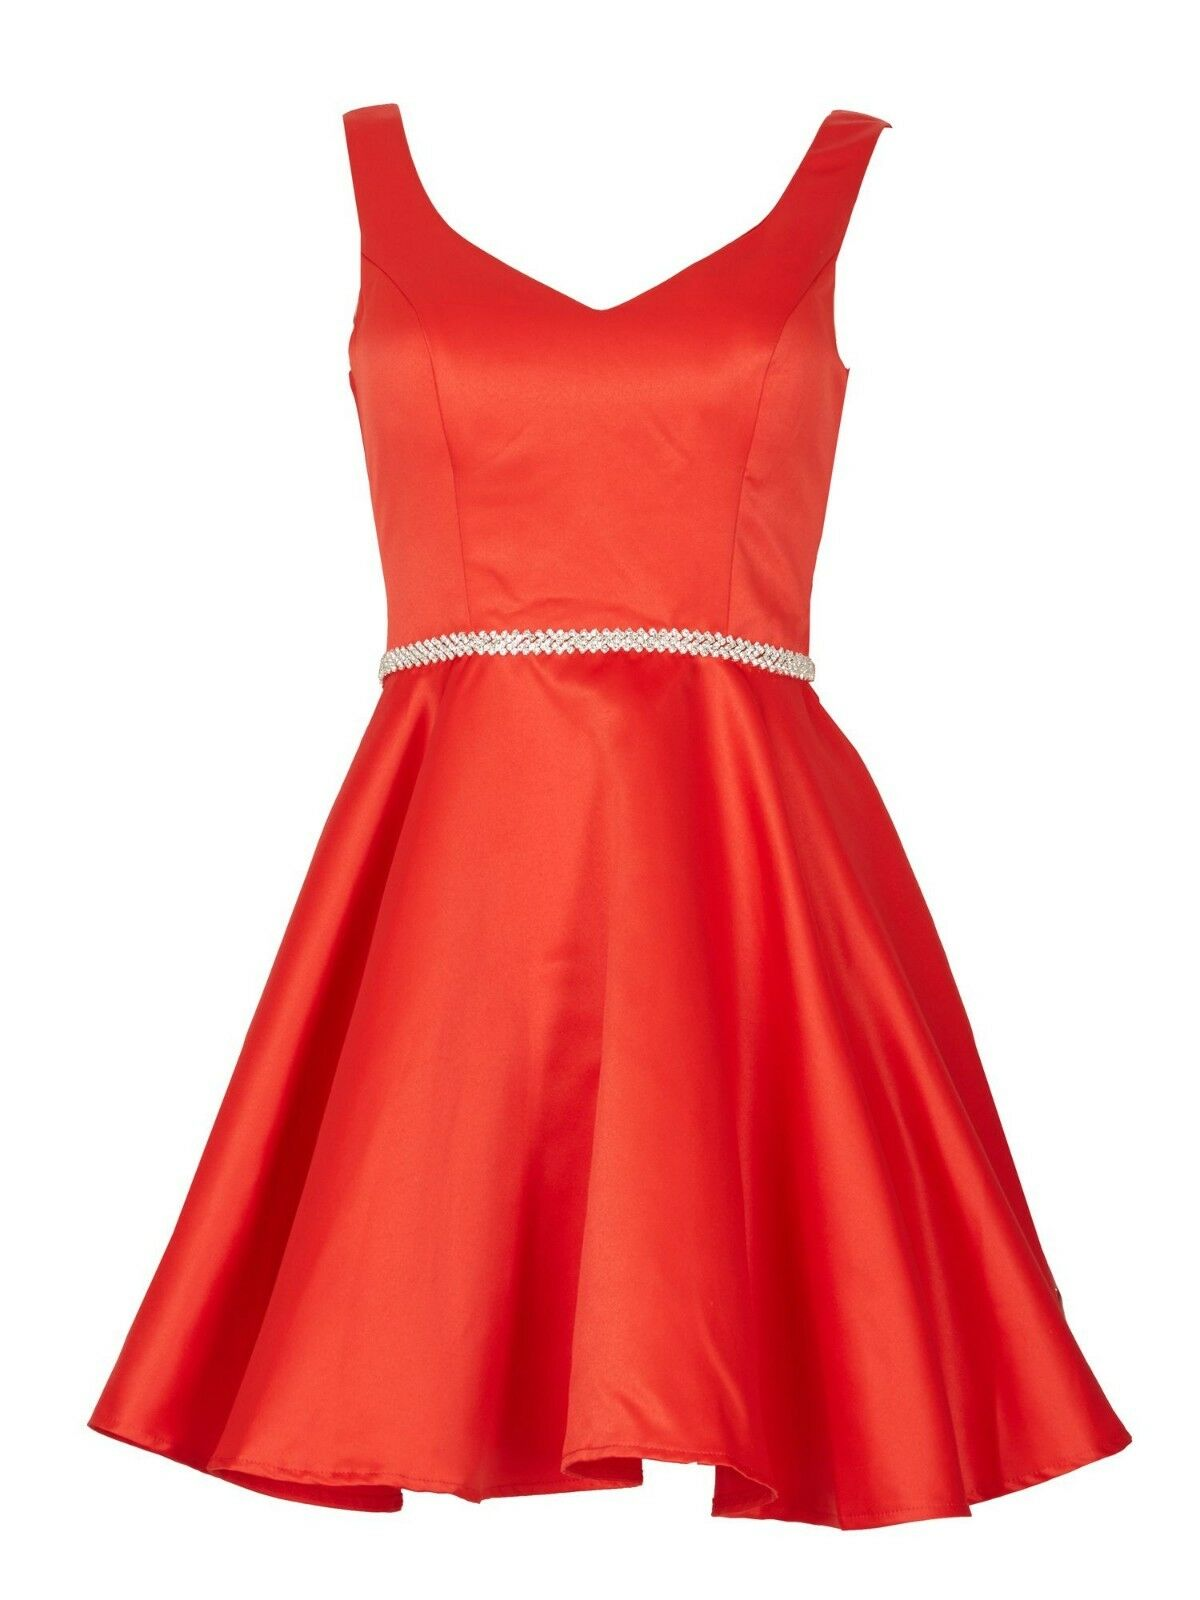 IZABEL LONDON RED DIAMANTE SEXY EVENING PROM PARTY DRESS SIZE 10  NEW